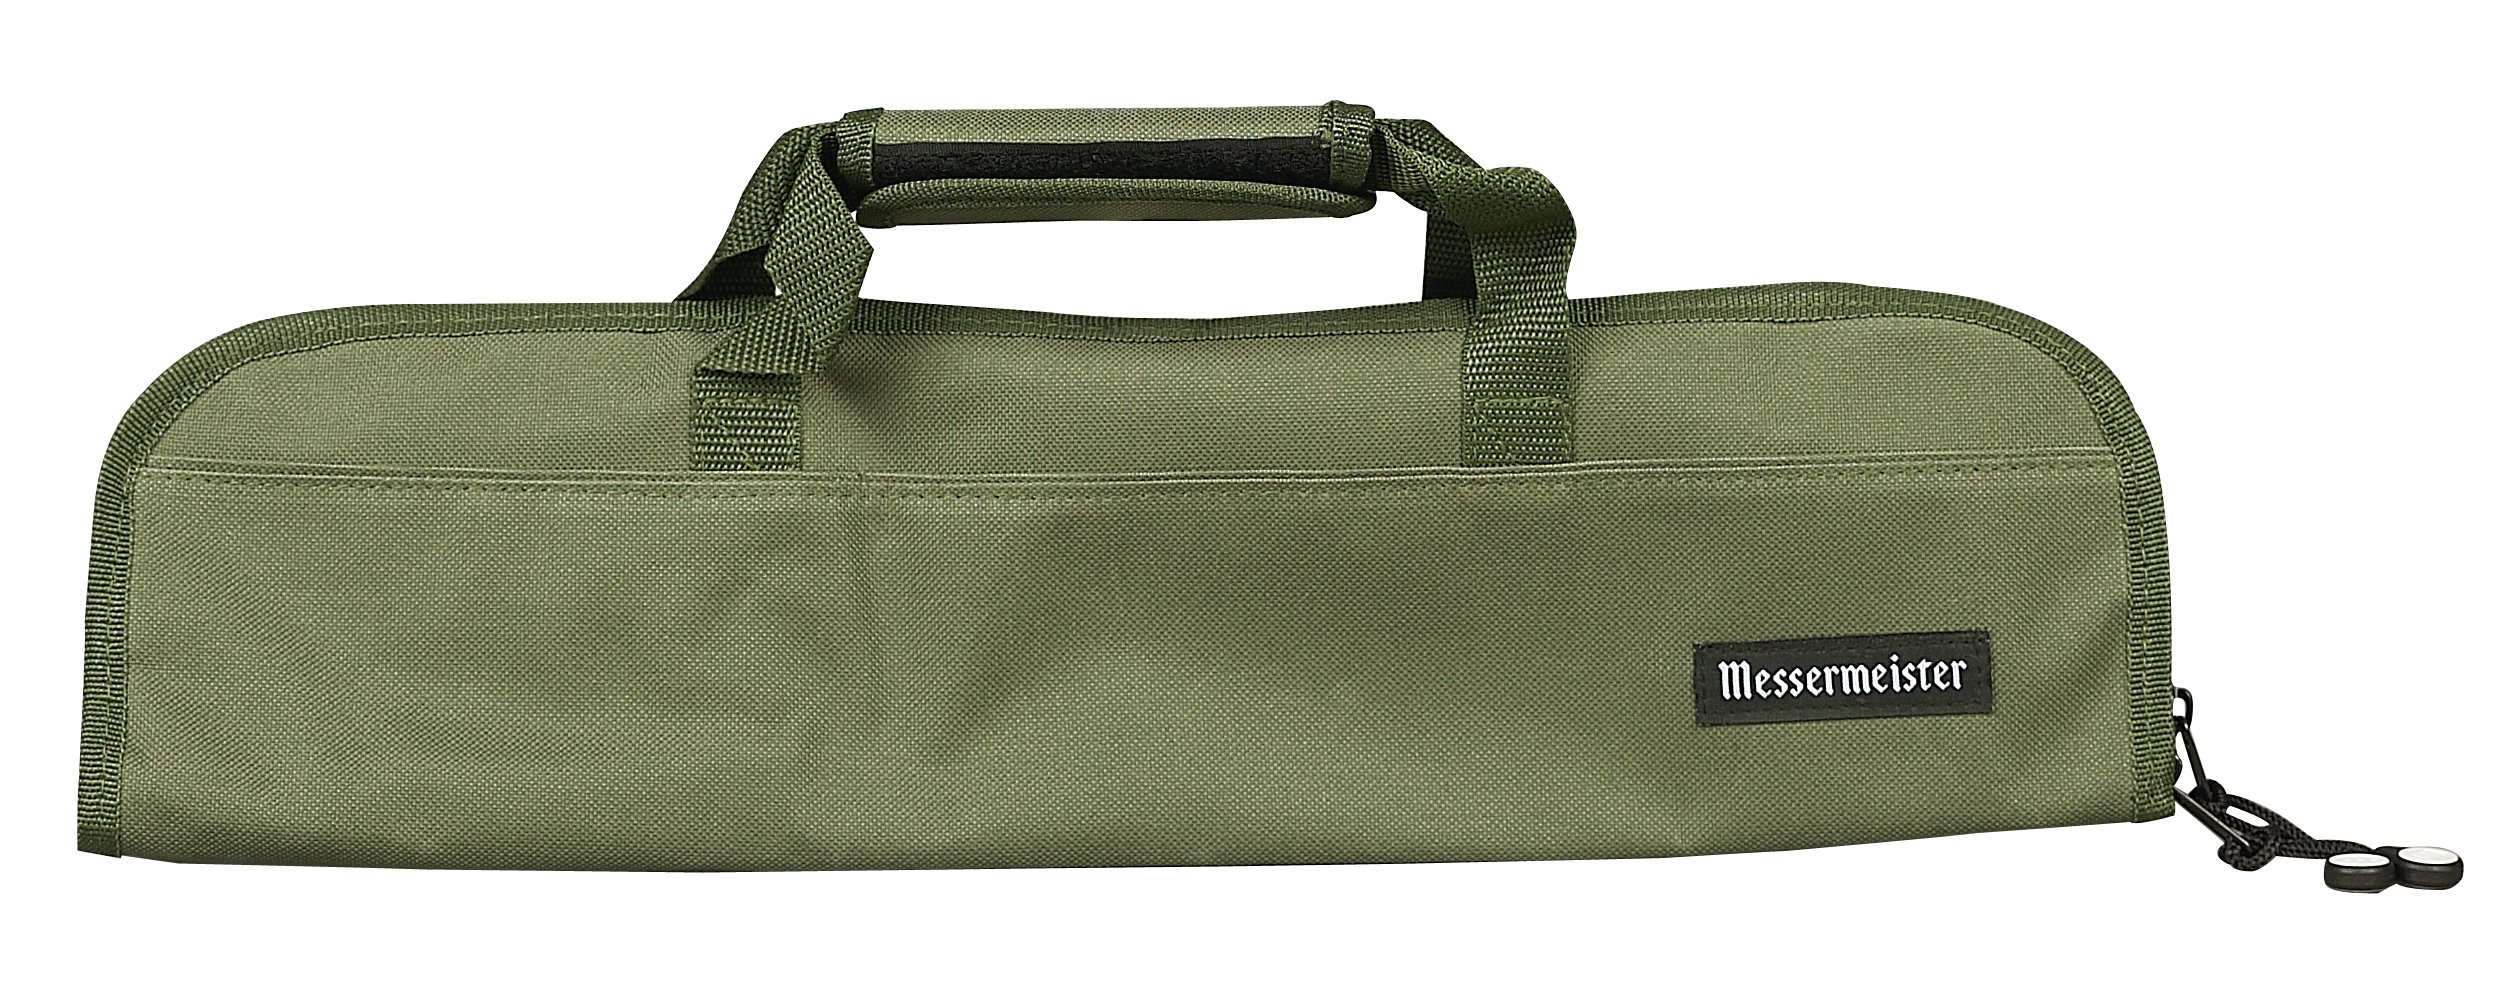 Messermeister 5-Pocket Padded Knife Roll, Olive